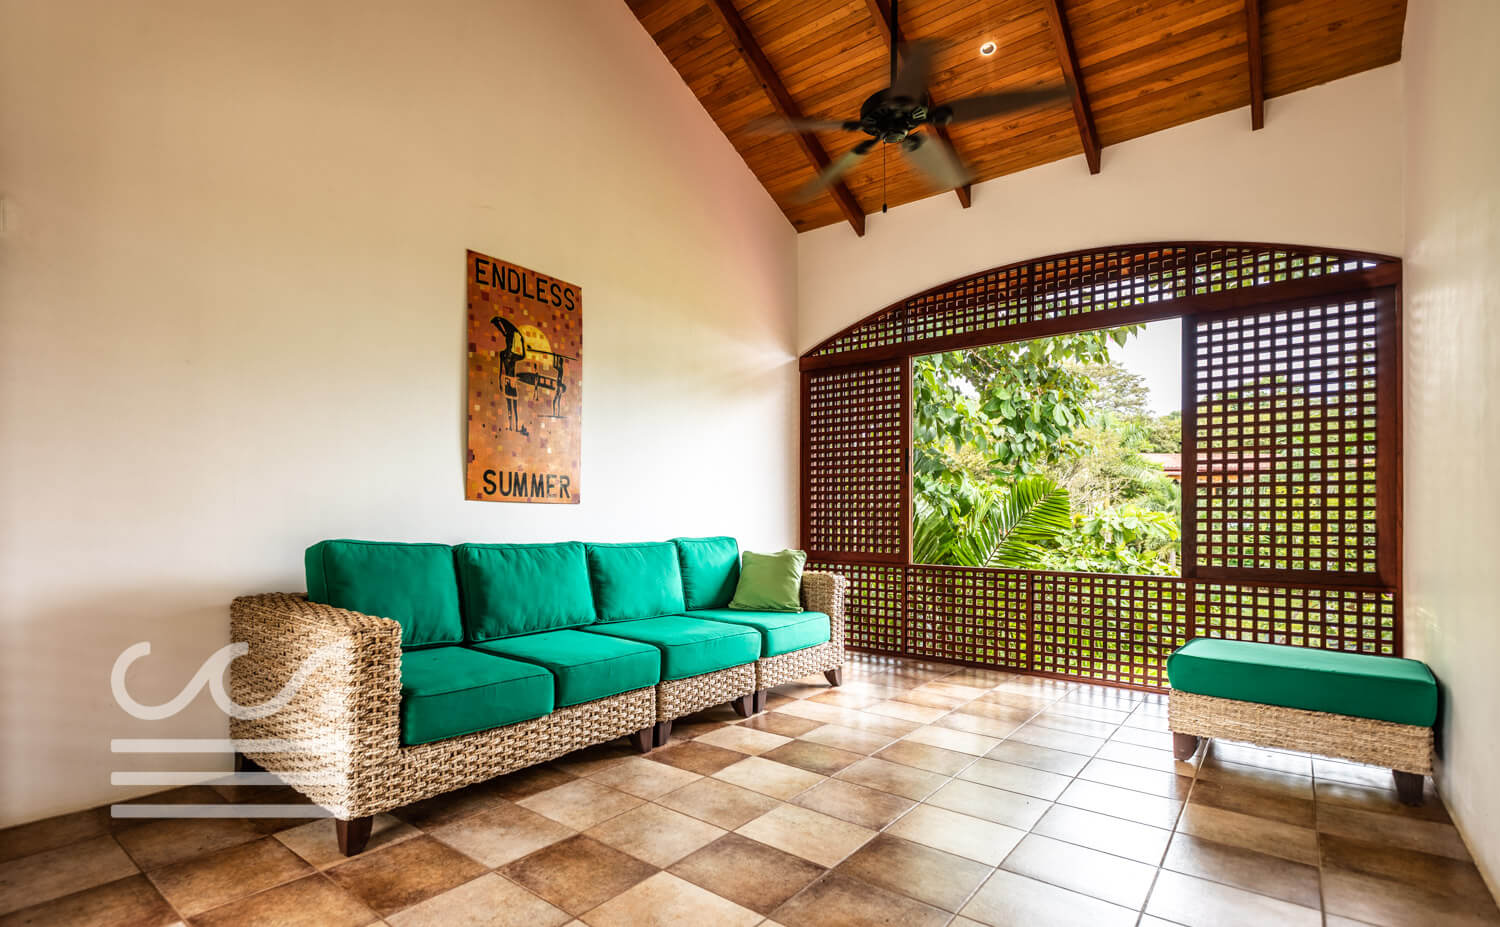 Endless-Summer-Wanderlust-Realty-Real-Estate-Rentals-Nosara-Costa-Rica-26.jpg